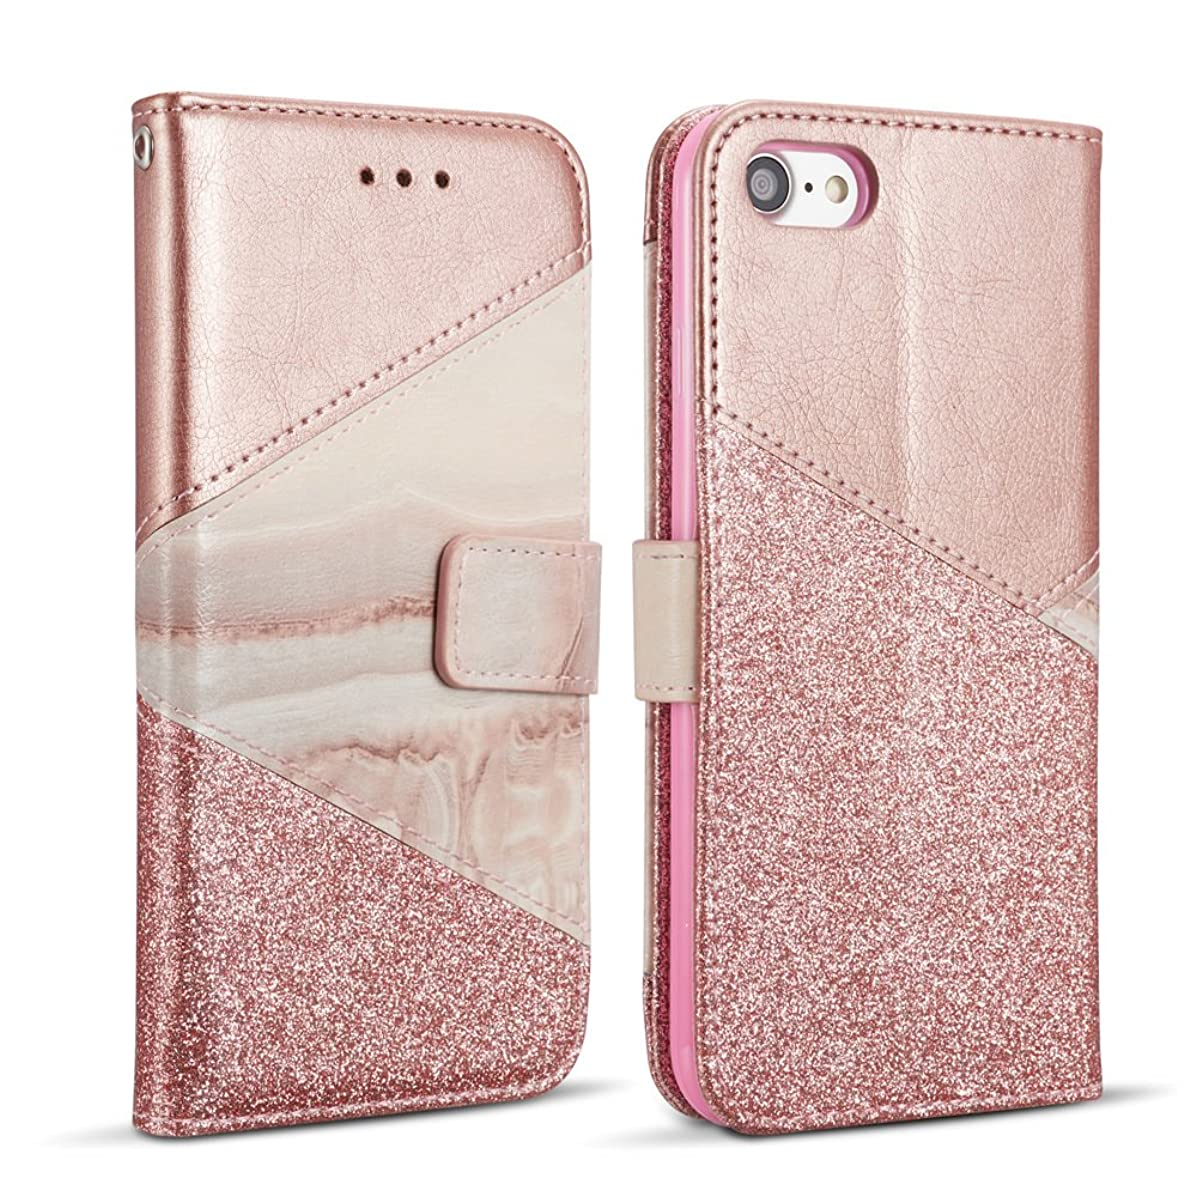 ZCDAYE Bling Glitter [Magnetic Closure] PU Leather [Ceramic Pattern] Flip Wallet Stand Folio Inner Soft TPU Stand Case Cover for Apple iPhone 6 Plus/iPhone 6S Plus 5.5 inch - Rose Gold